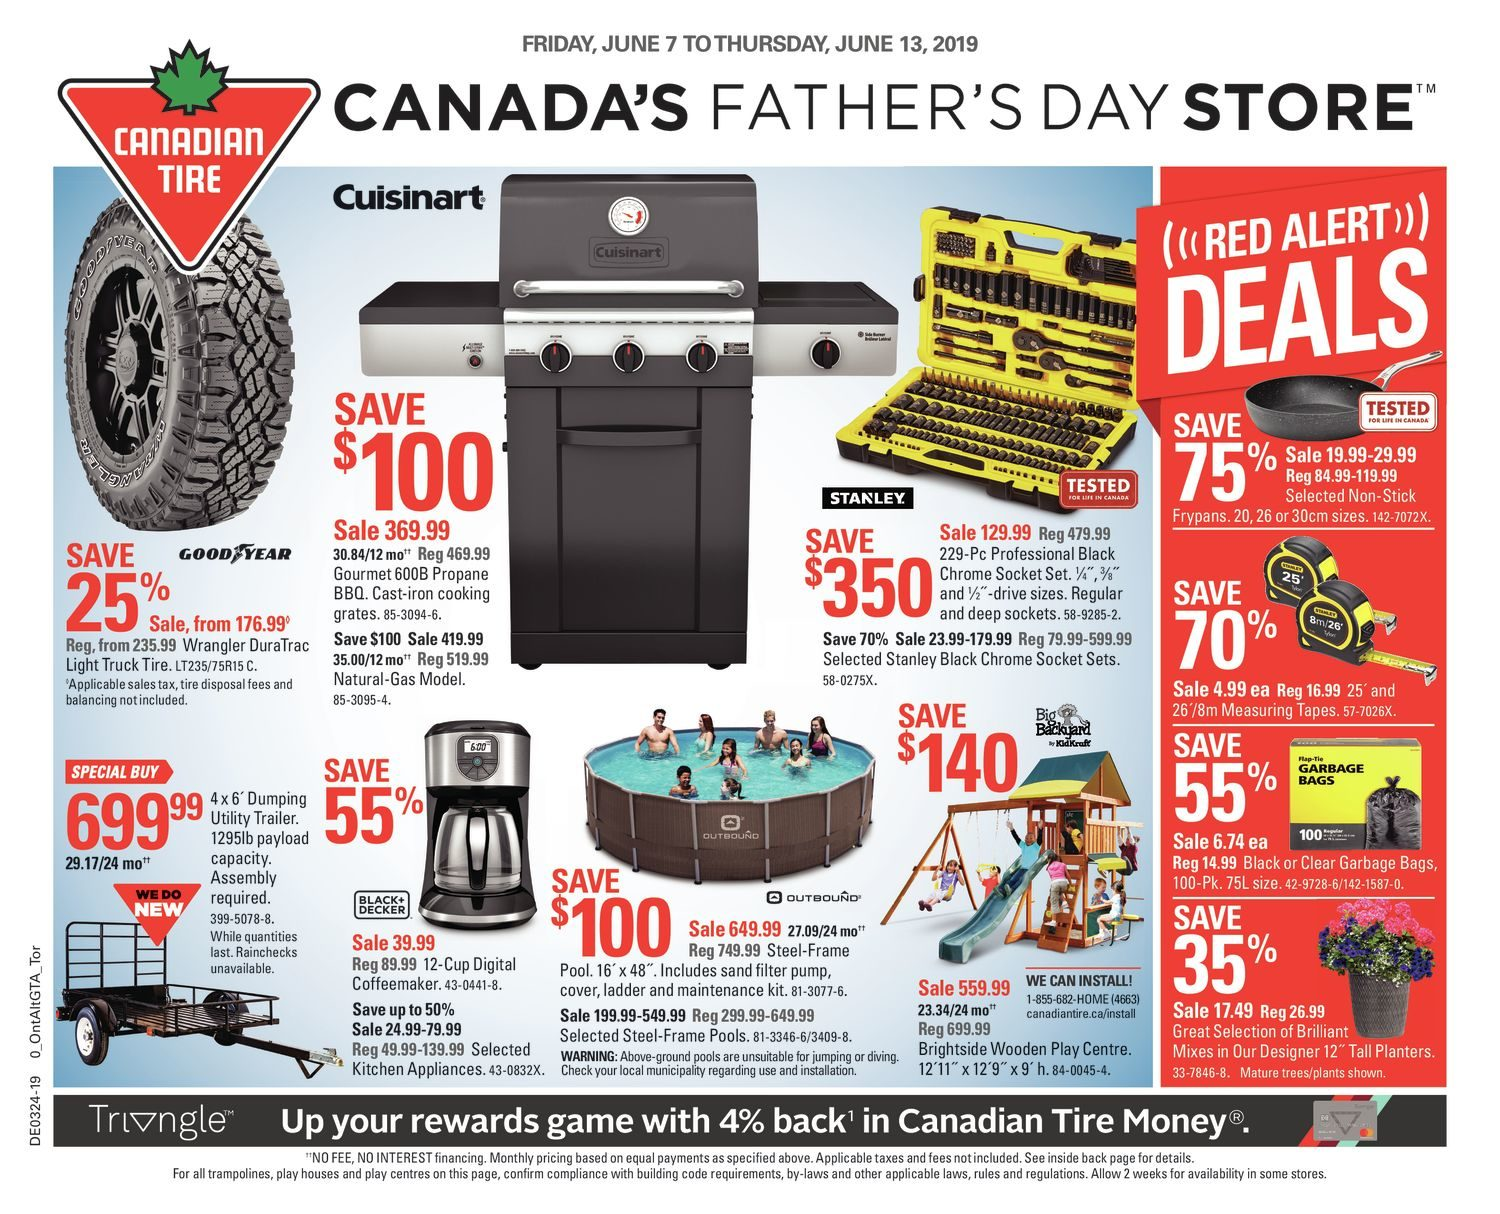 Sofa Legs Canadian Tire Canadian Tire Weekly Flyer Weekly Canada S Father S Day Store